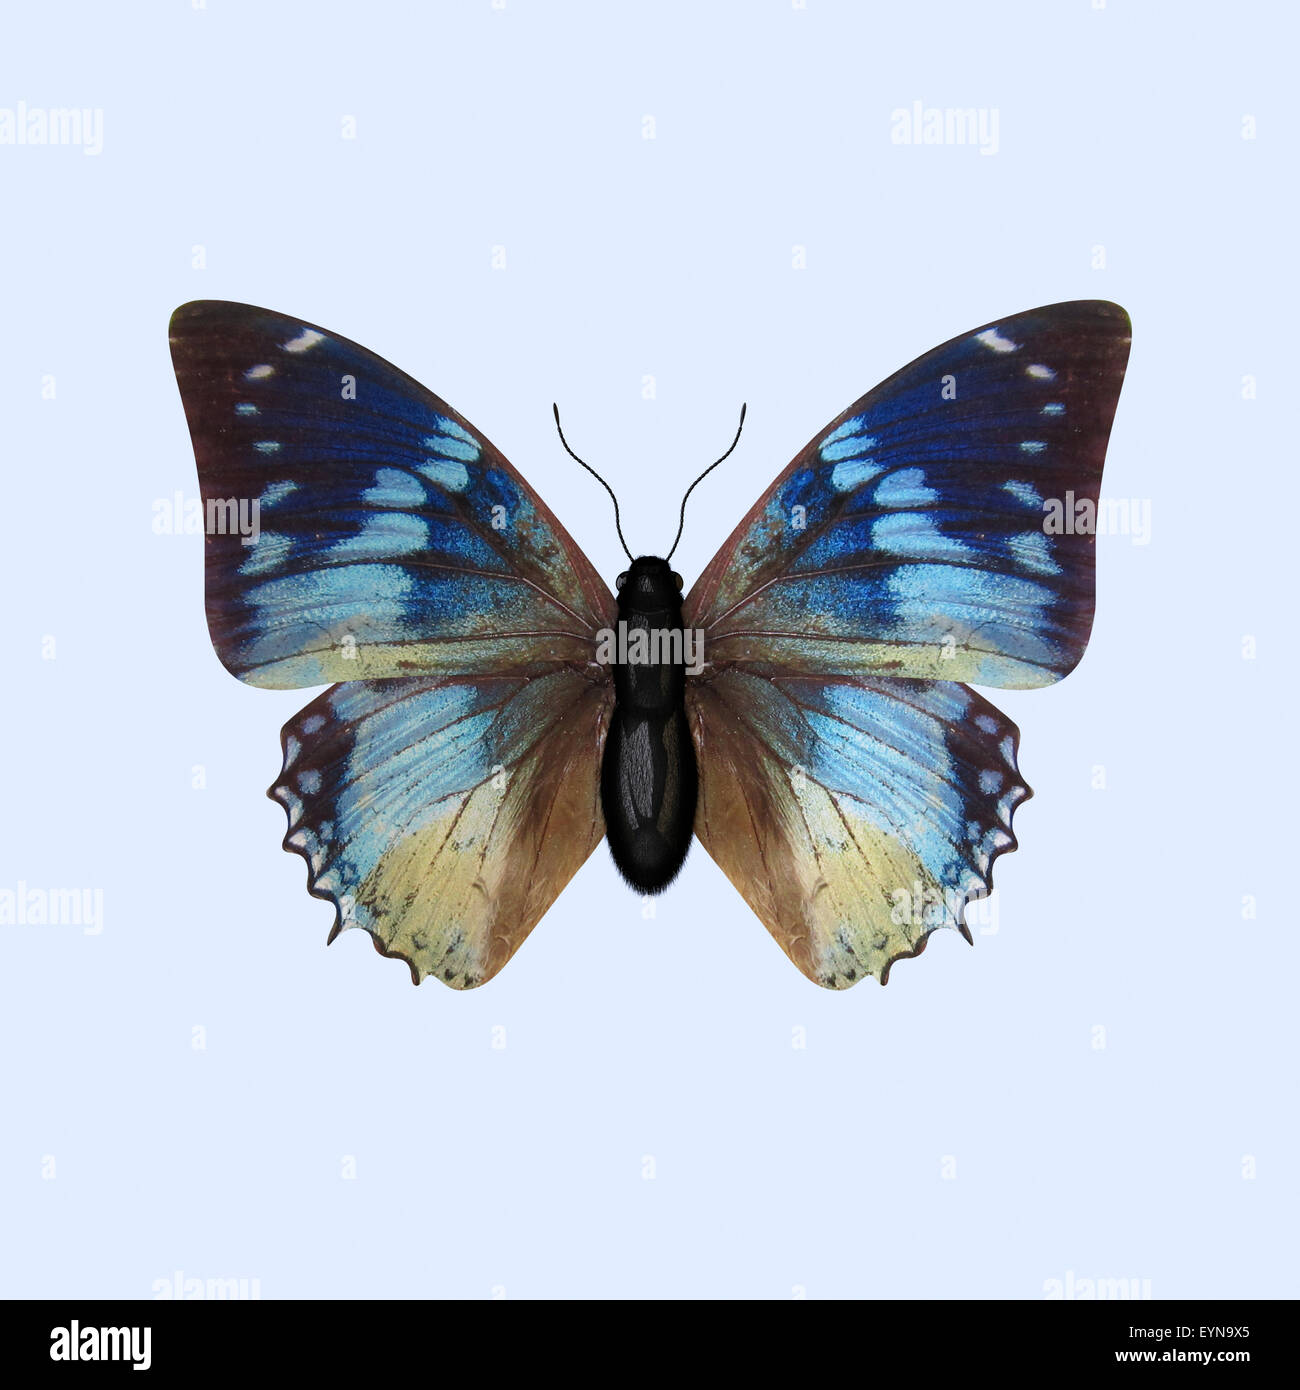 The Three-dimensional Blue Butterfly of the Nymphalidae Family, scientifically known as Charaxes Smaragdalis. Isolated - Stock Image